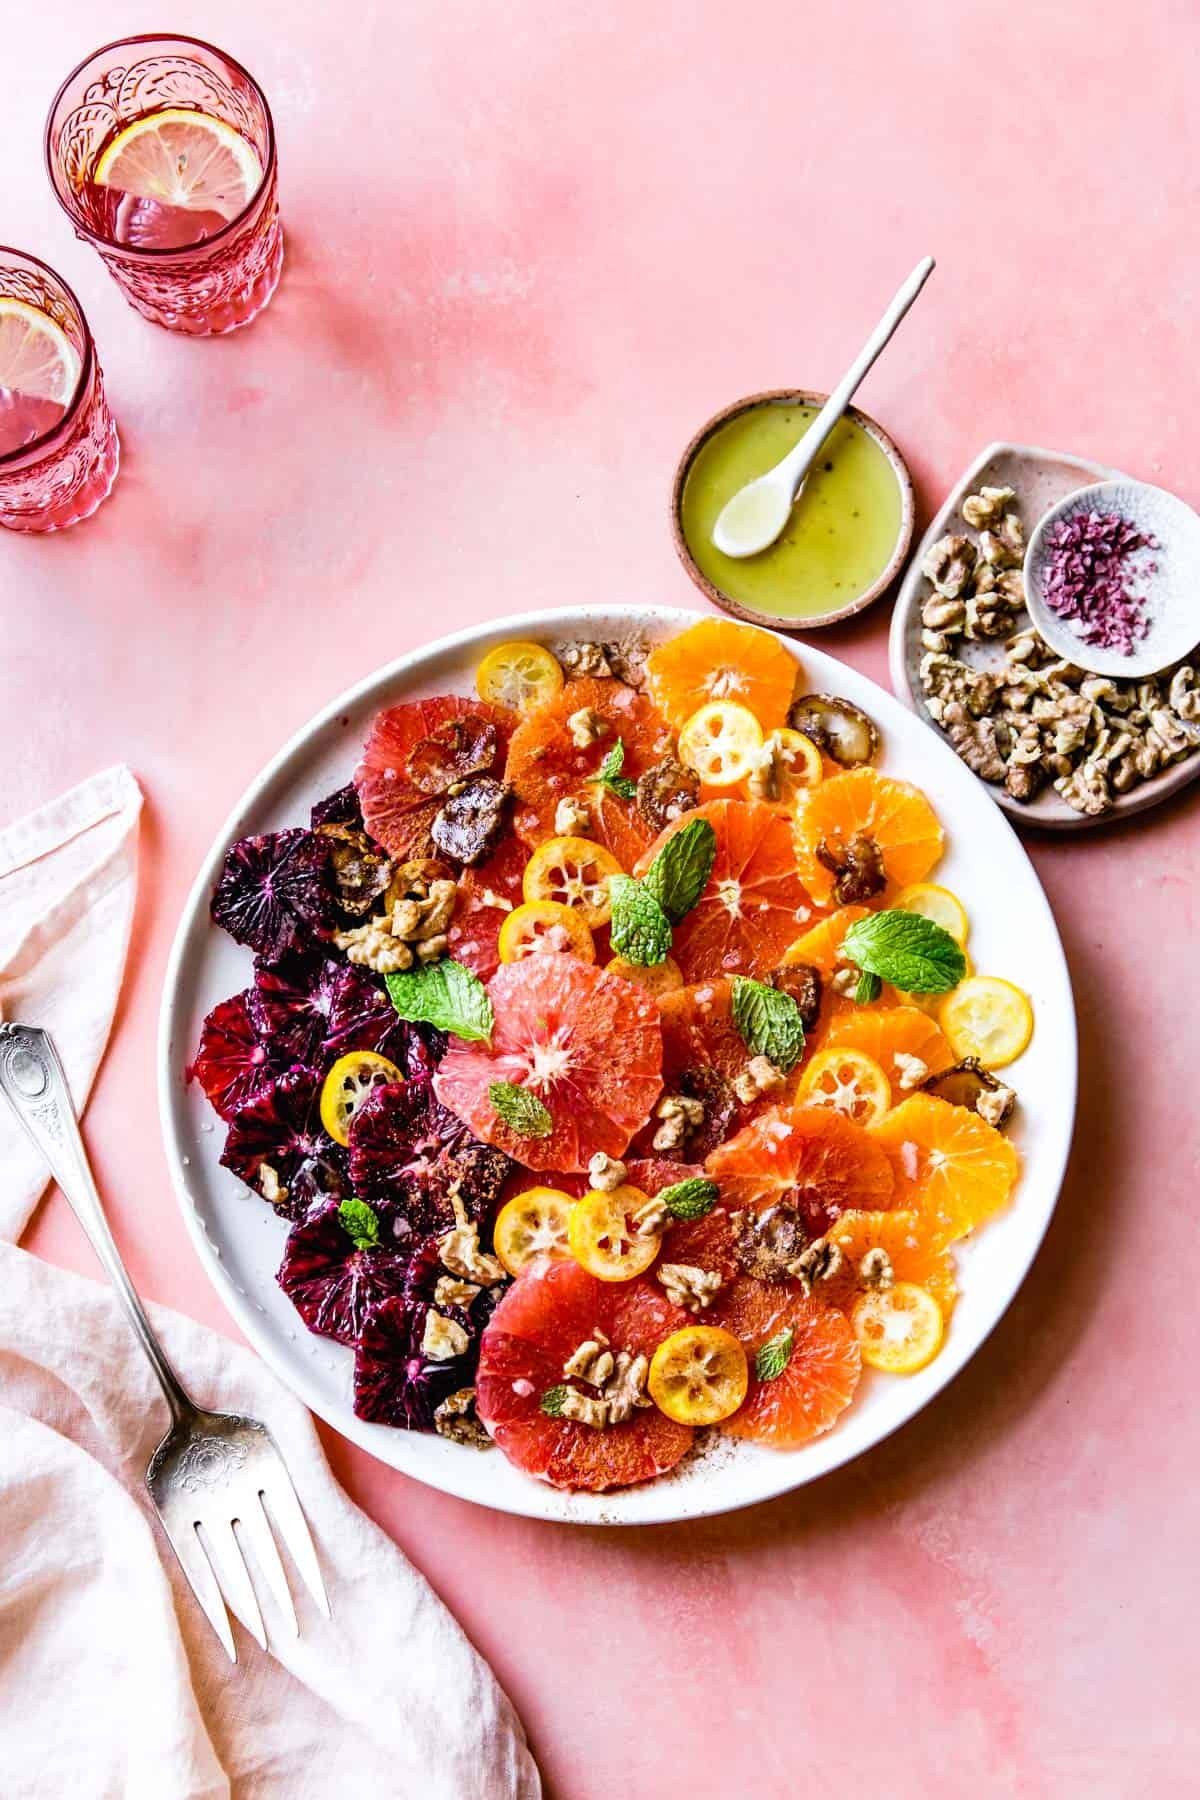 Winter Citrus Fruit Salad with Walnuts, Dates & Rose